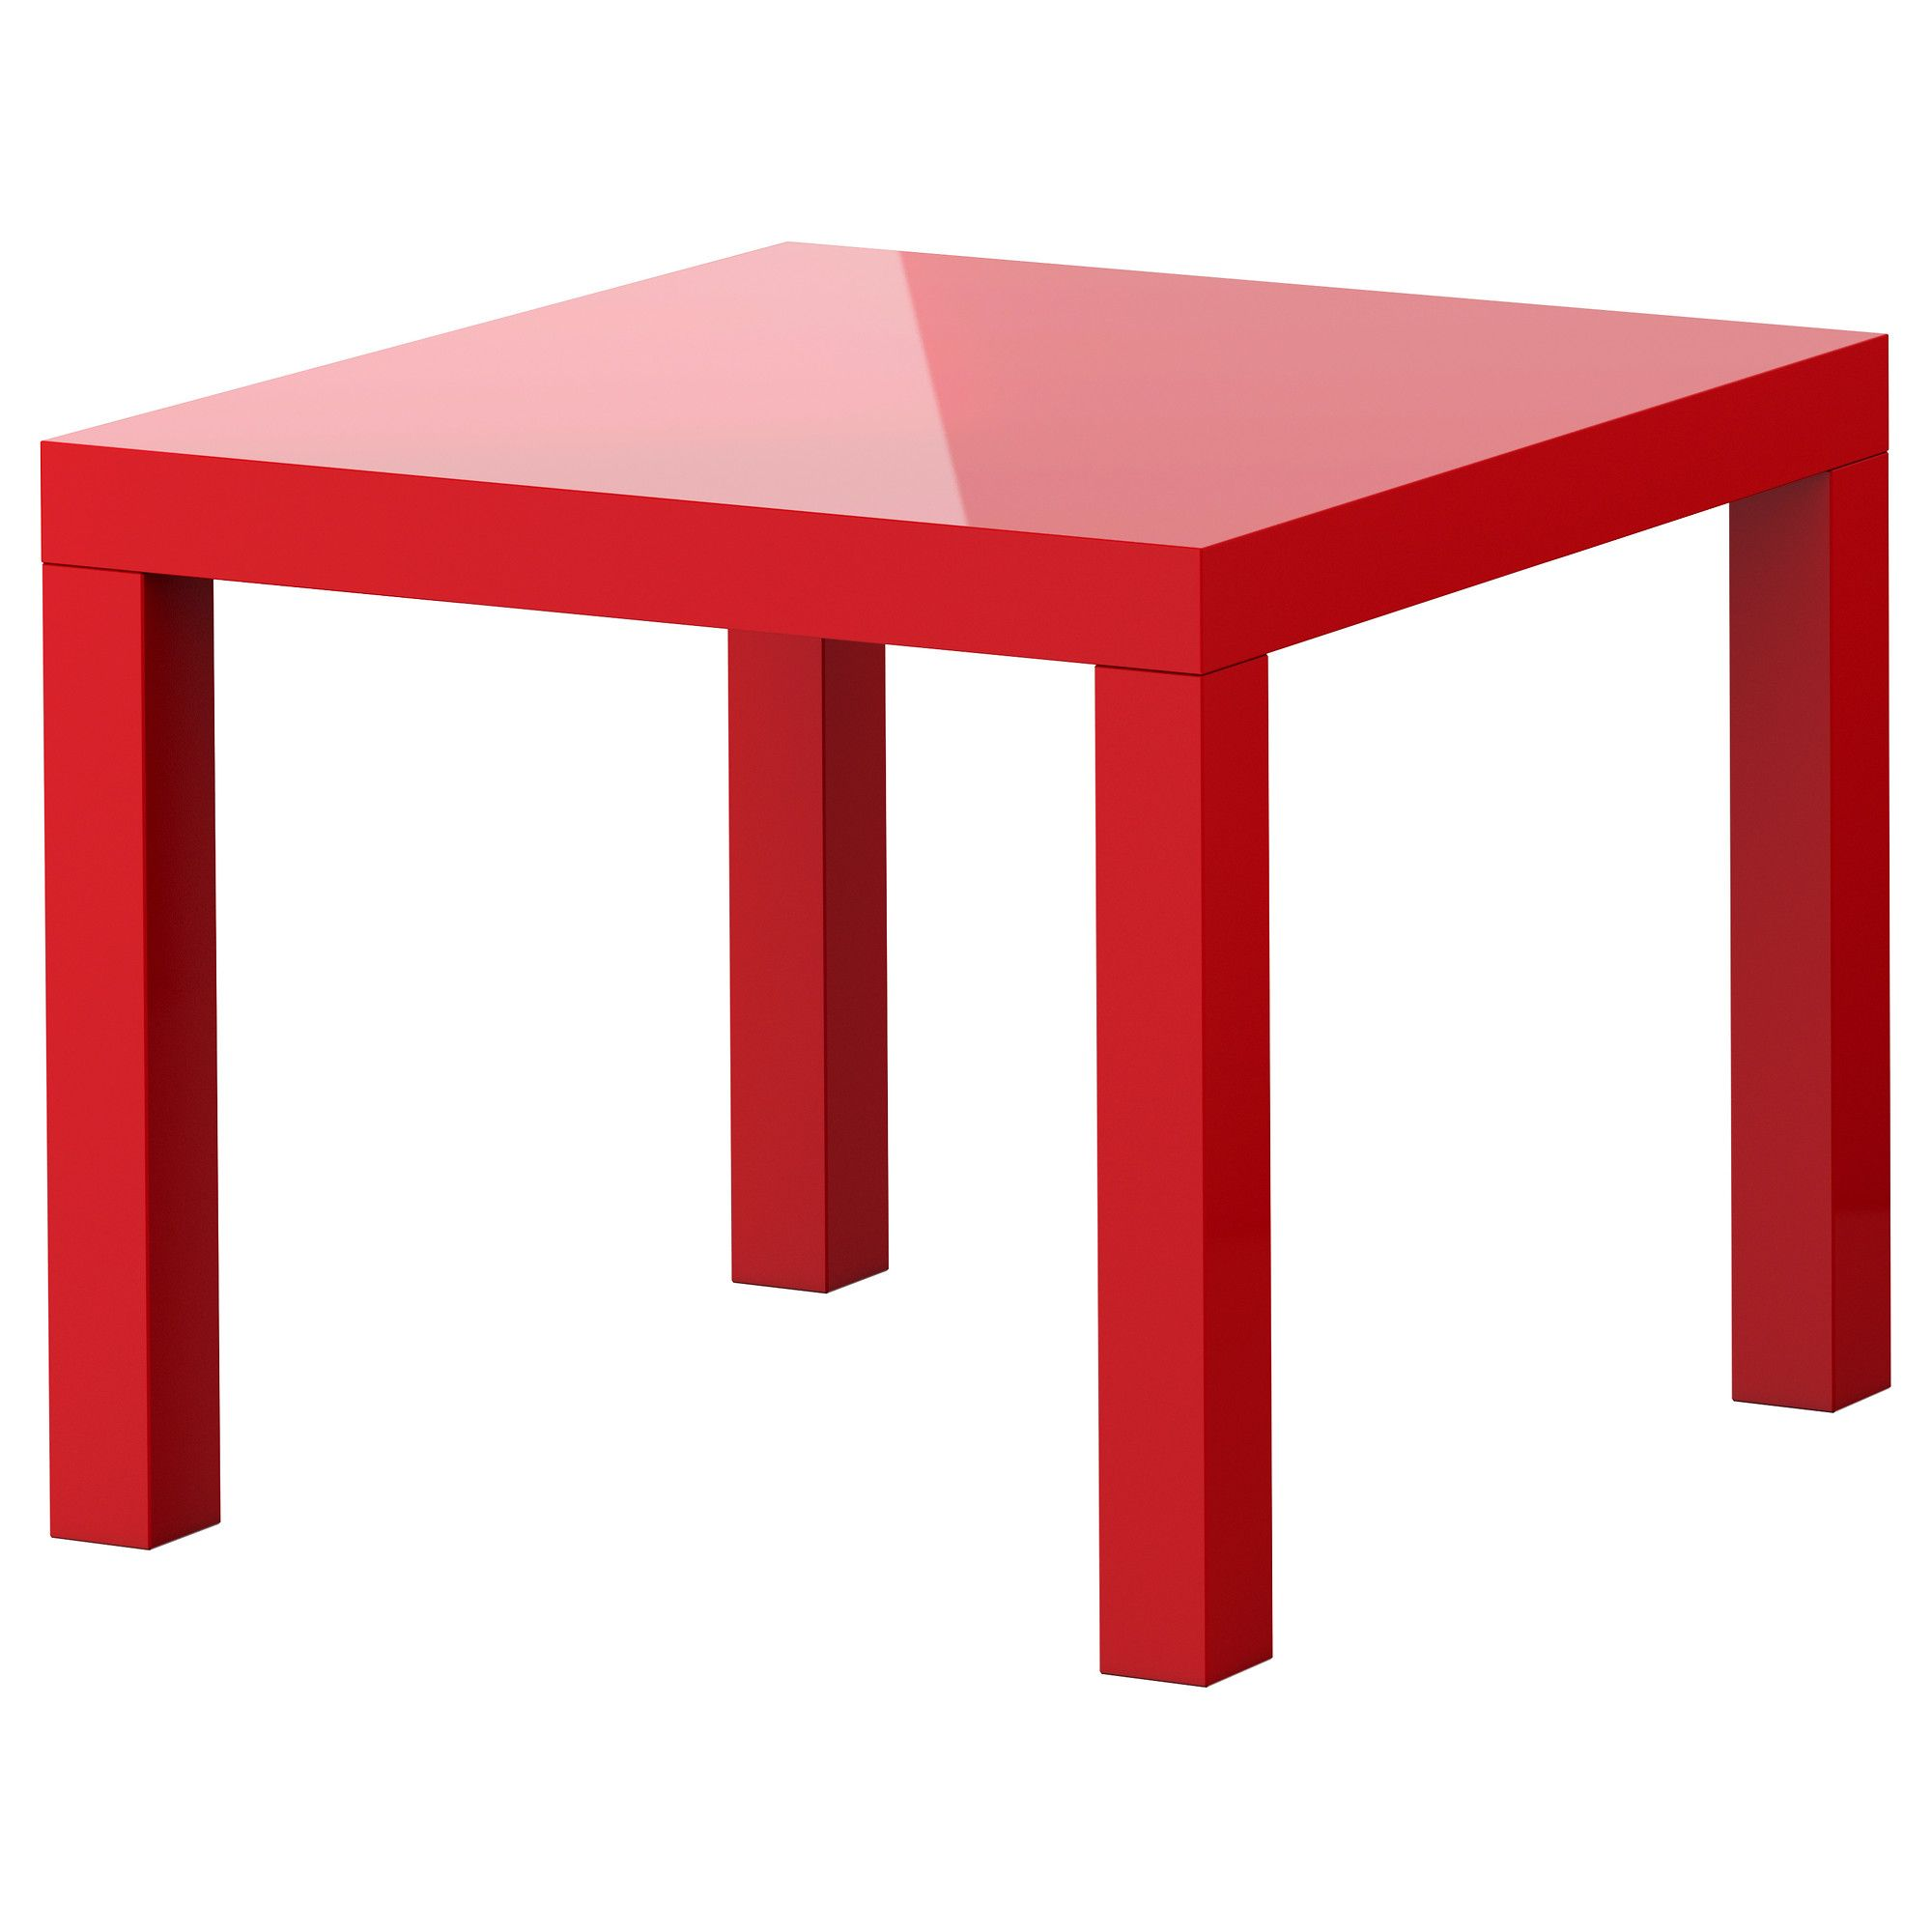 e3310d5c50abf LACK Side table- IKEA This table is sitting on the left side of the Jenna s  desk